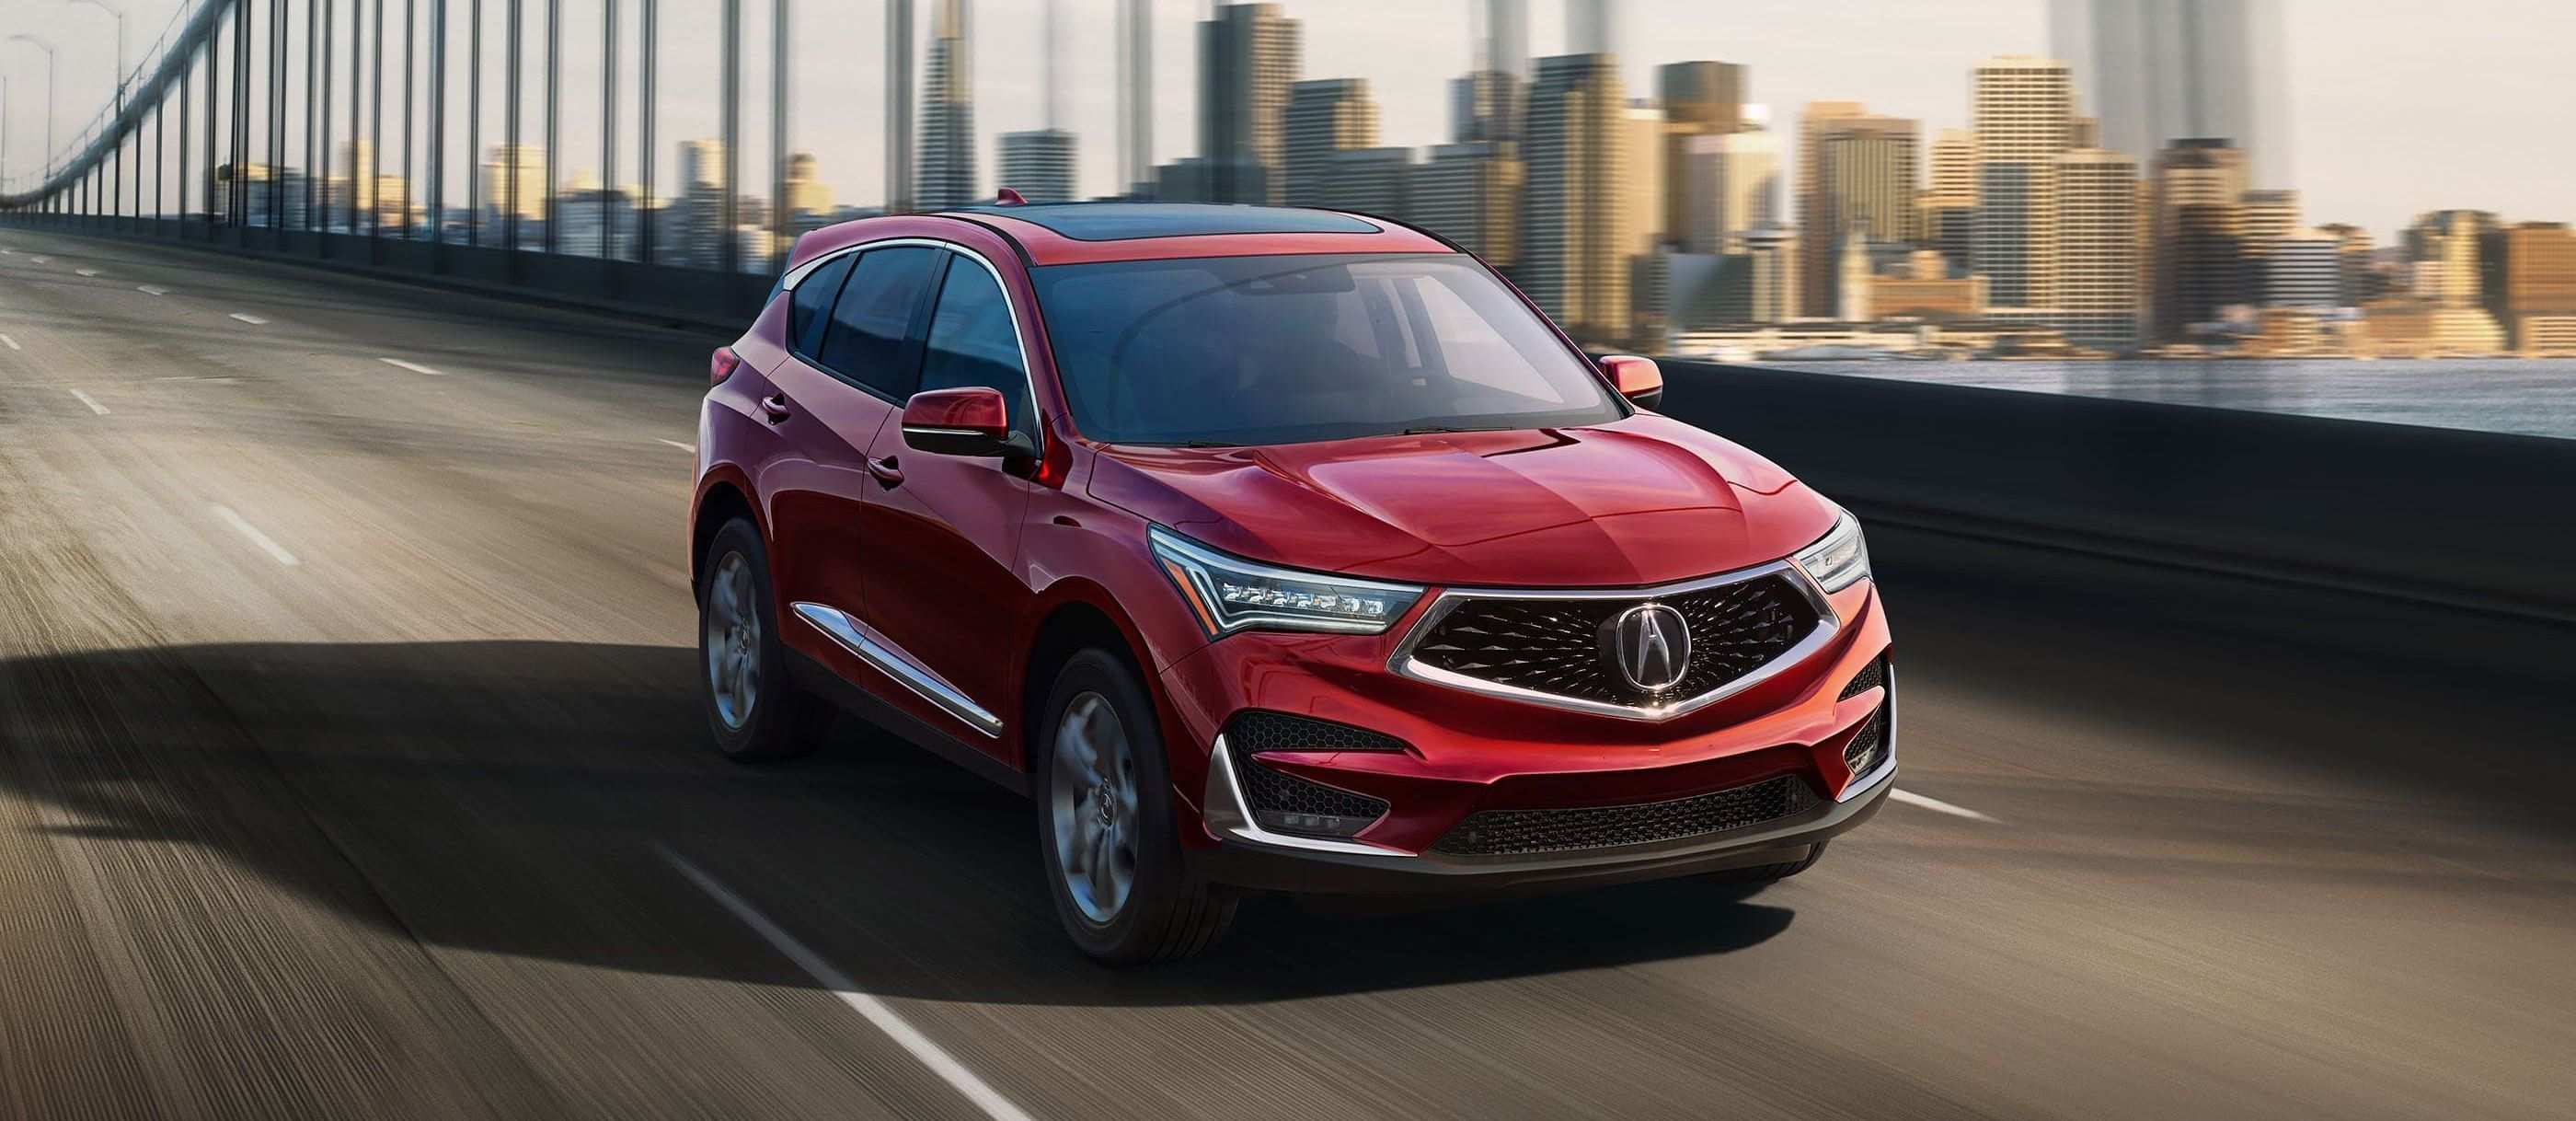 83 All New Acura Tlx 2020 Lease Performance and New Engine by Acura Tlx 2020 Lease